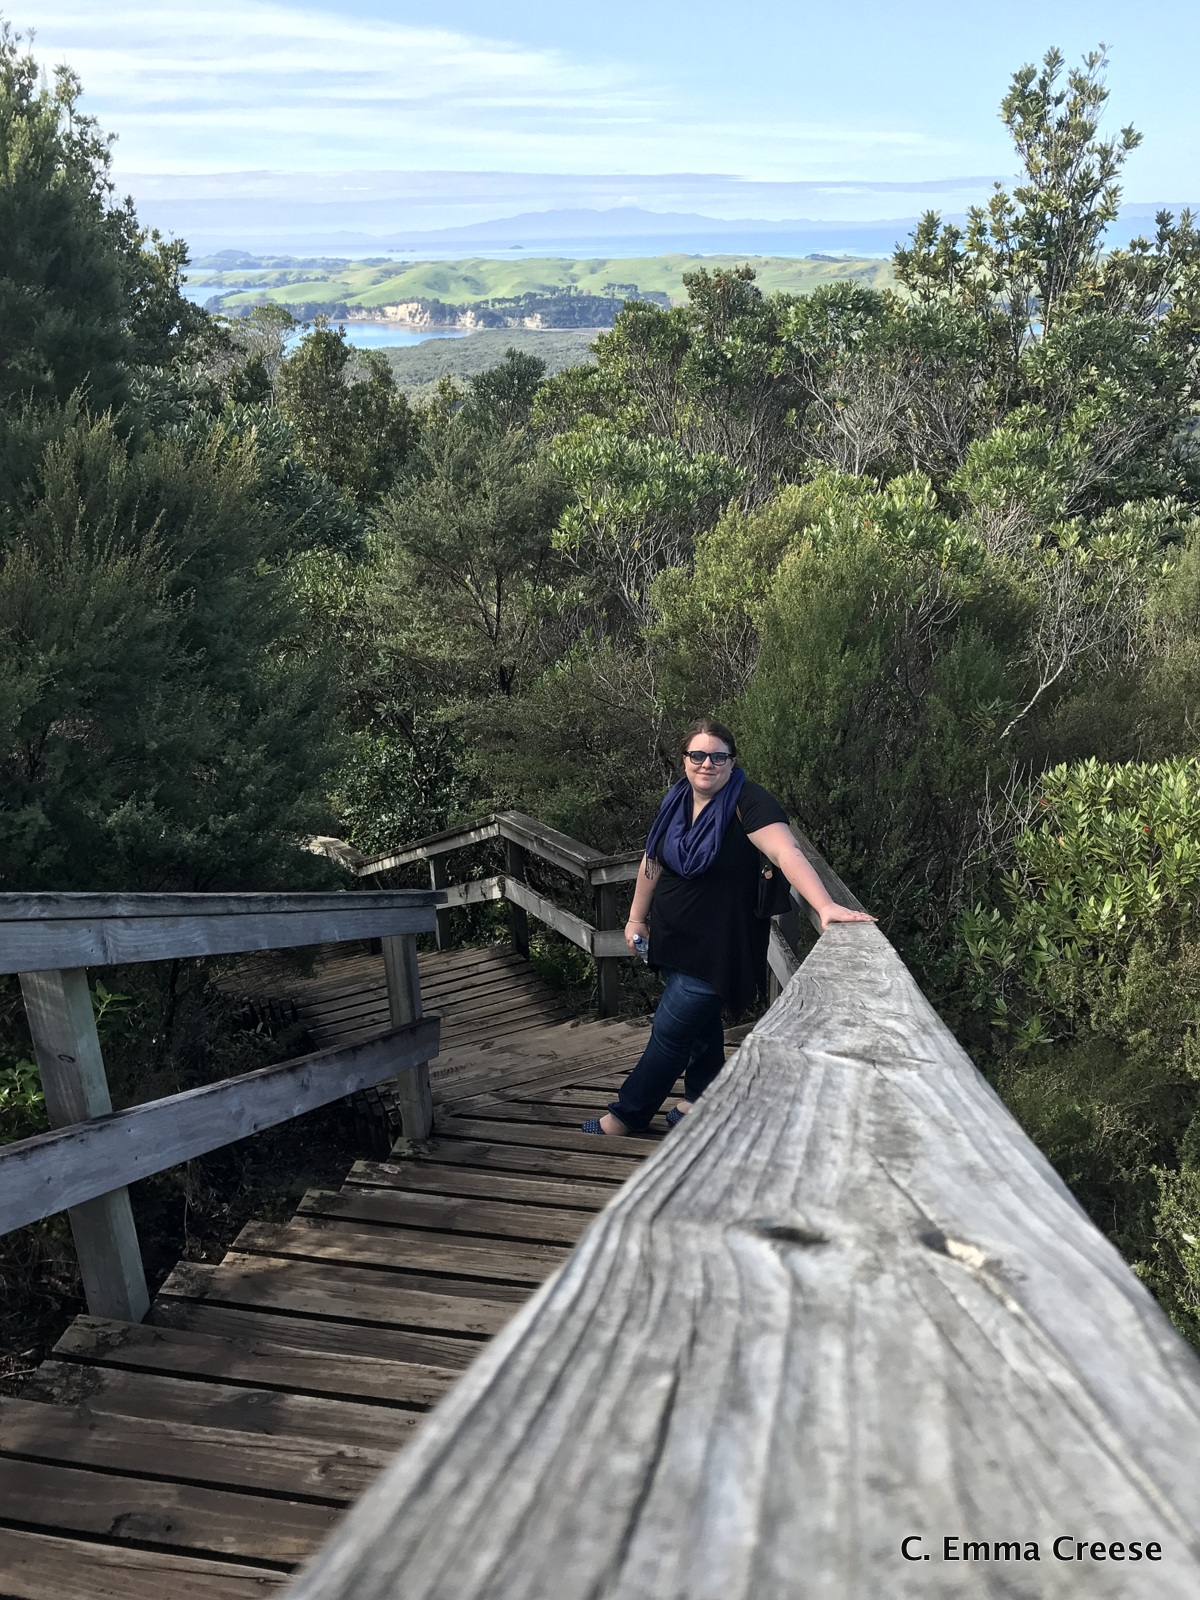 That time we went out for brunch and accidentally hiked the Rangitoto volcano crater